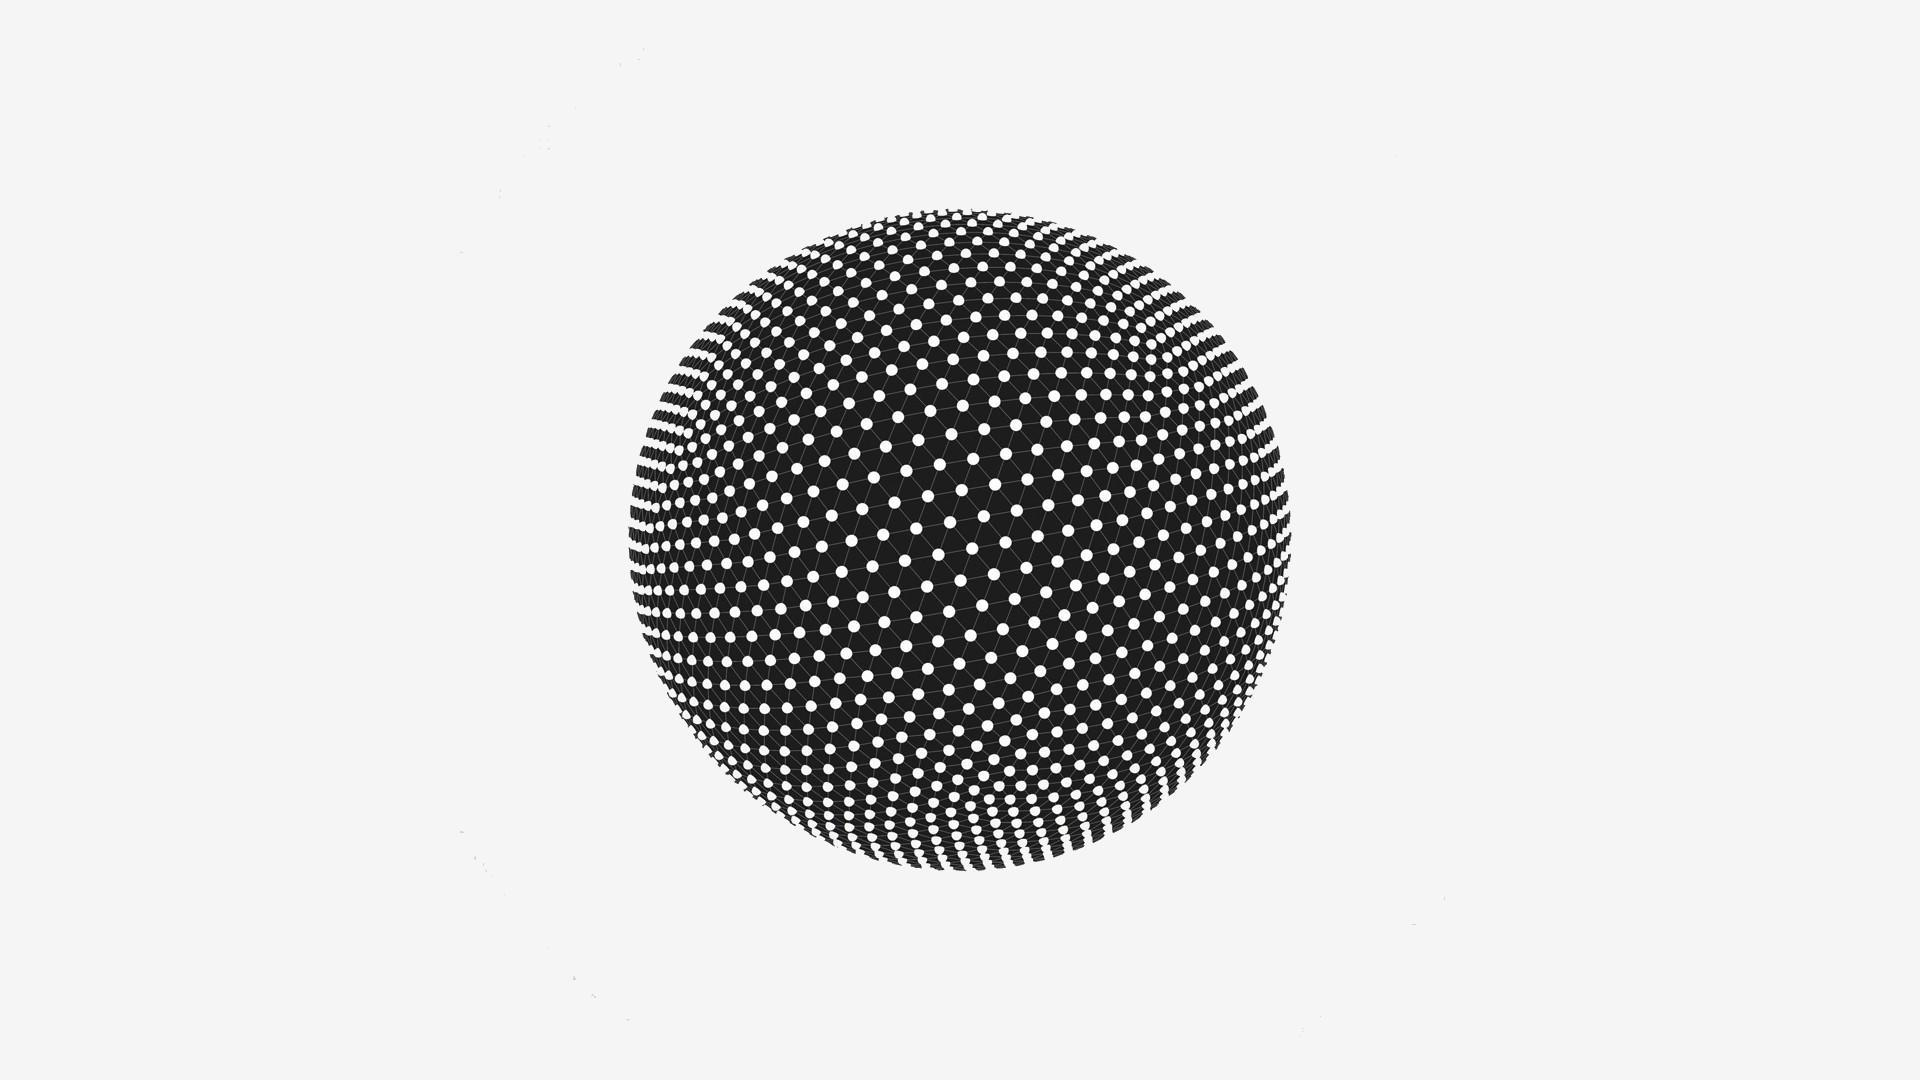 1080 x 1920 illusion wallpaper: Tesseract-simple-background-white-illusion-altered-state